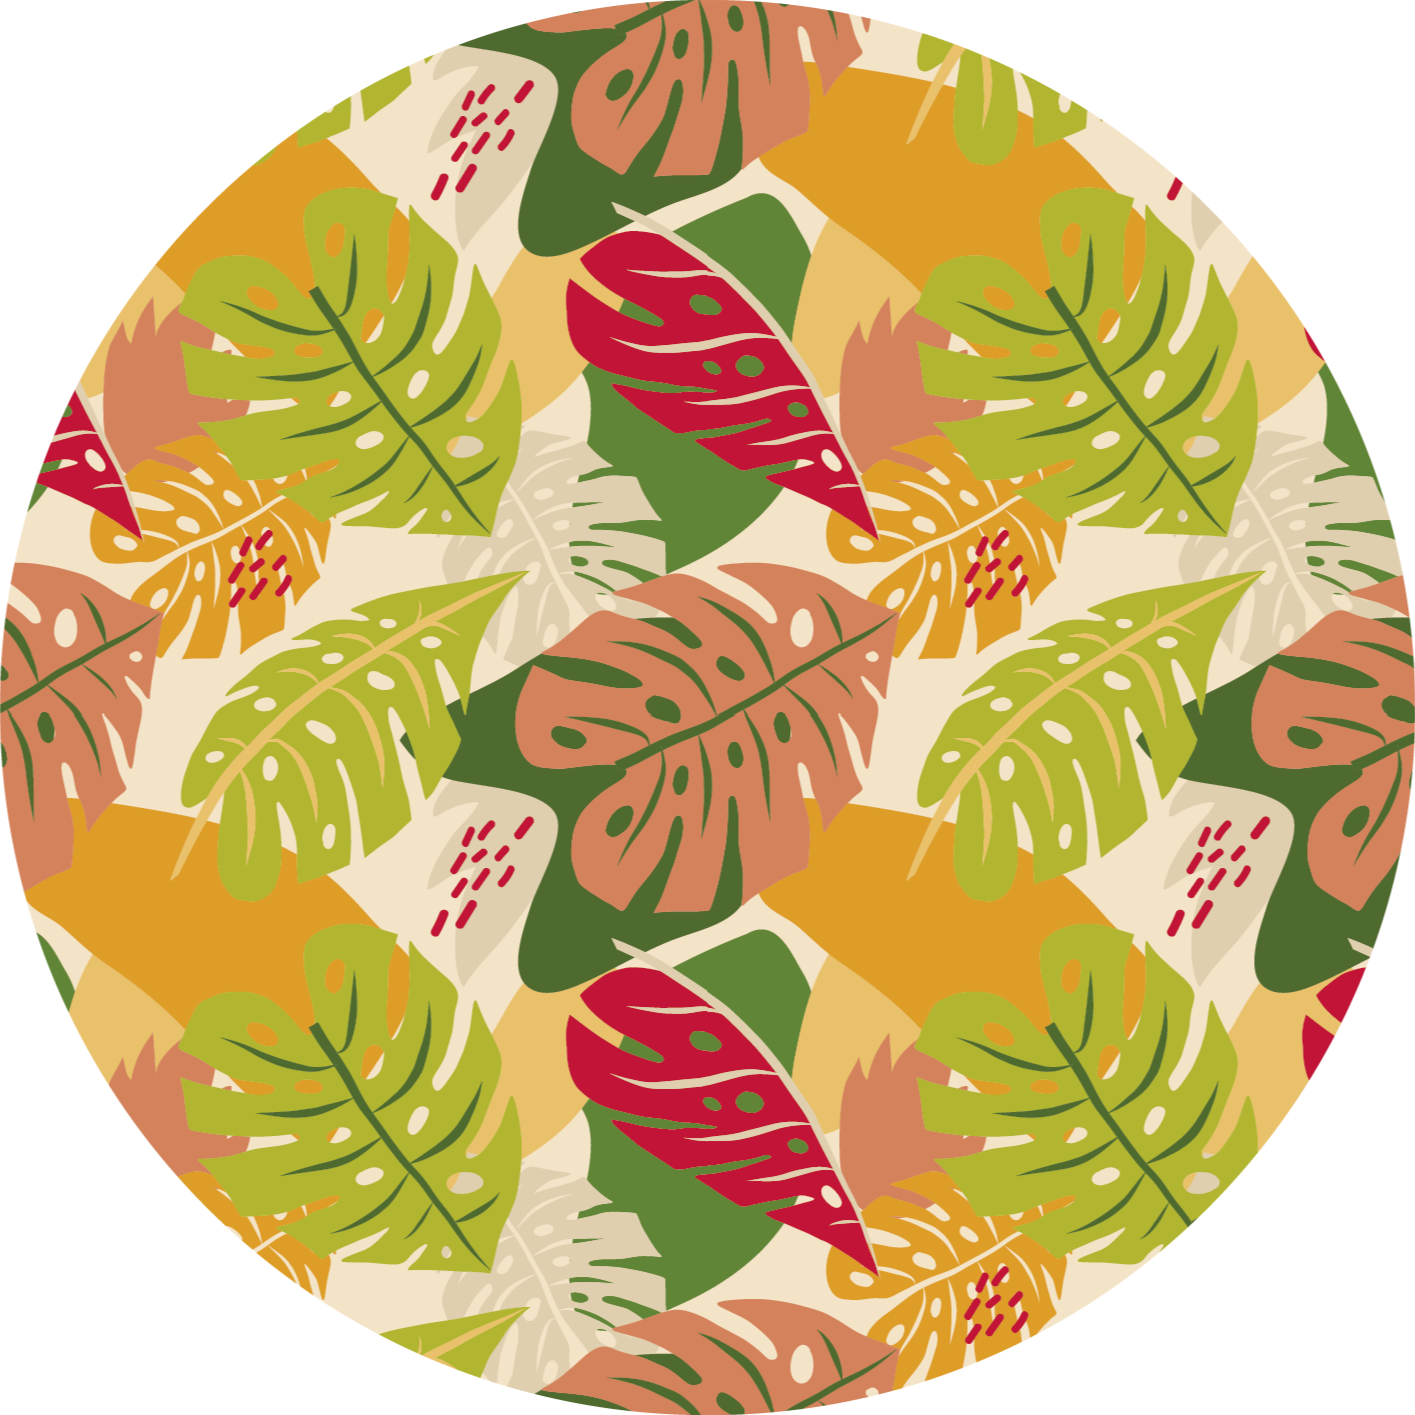 TenStickers. Covor design monstera grafic alternativ natura. Un covor rotund original din vinil care poate fi așezat pe un living ca covor din camera centrală. Conține un design colorat de frunze de monstera.